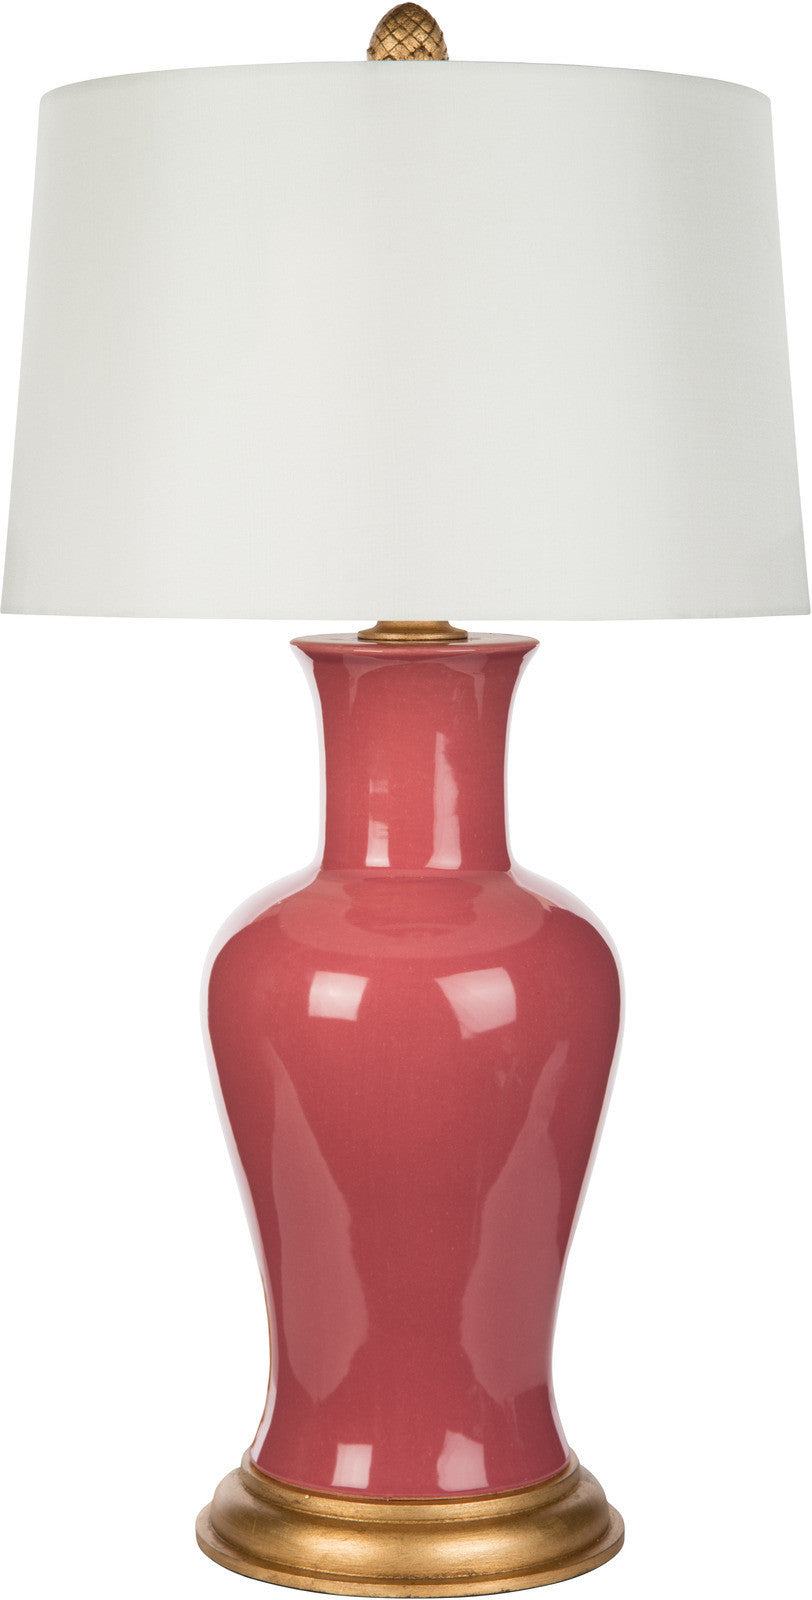 TABLE LAMPS - GORE DEAN HOME